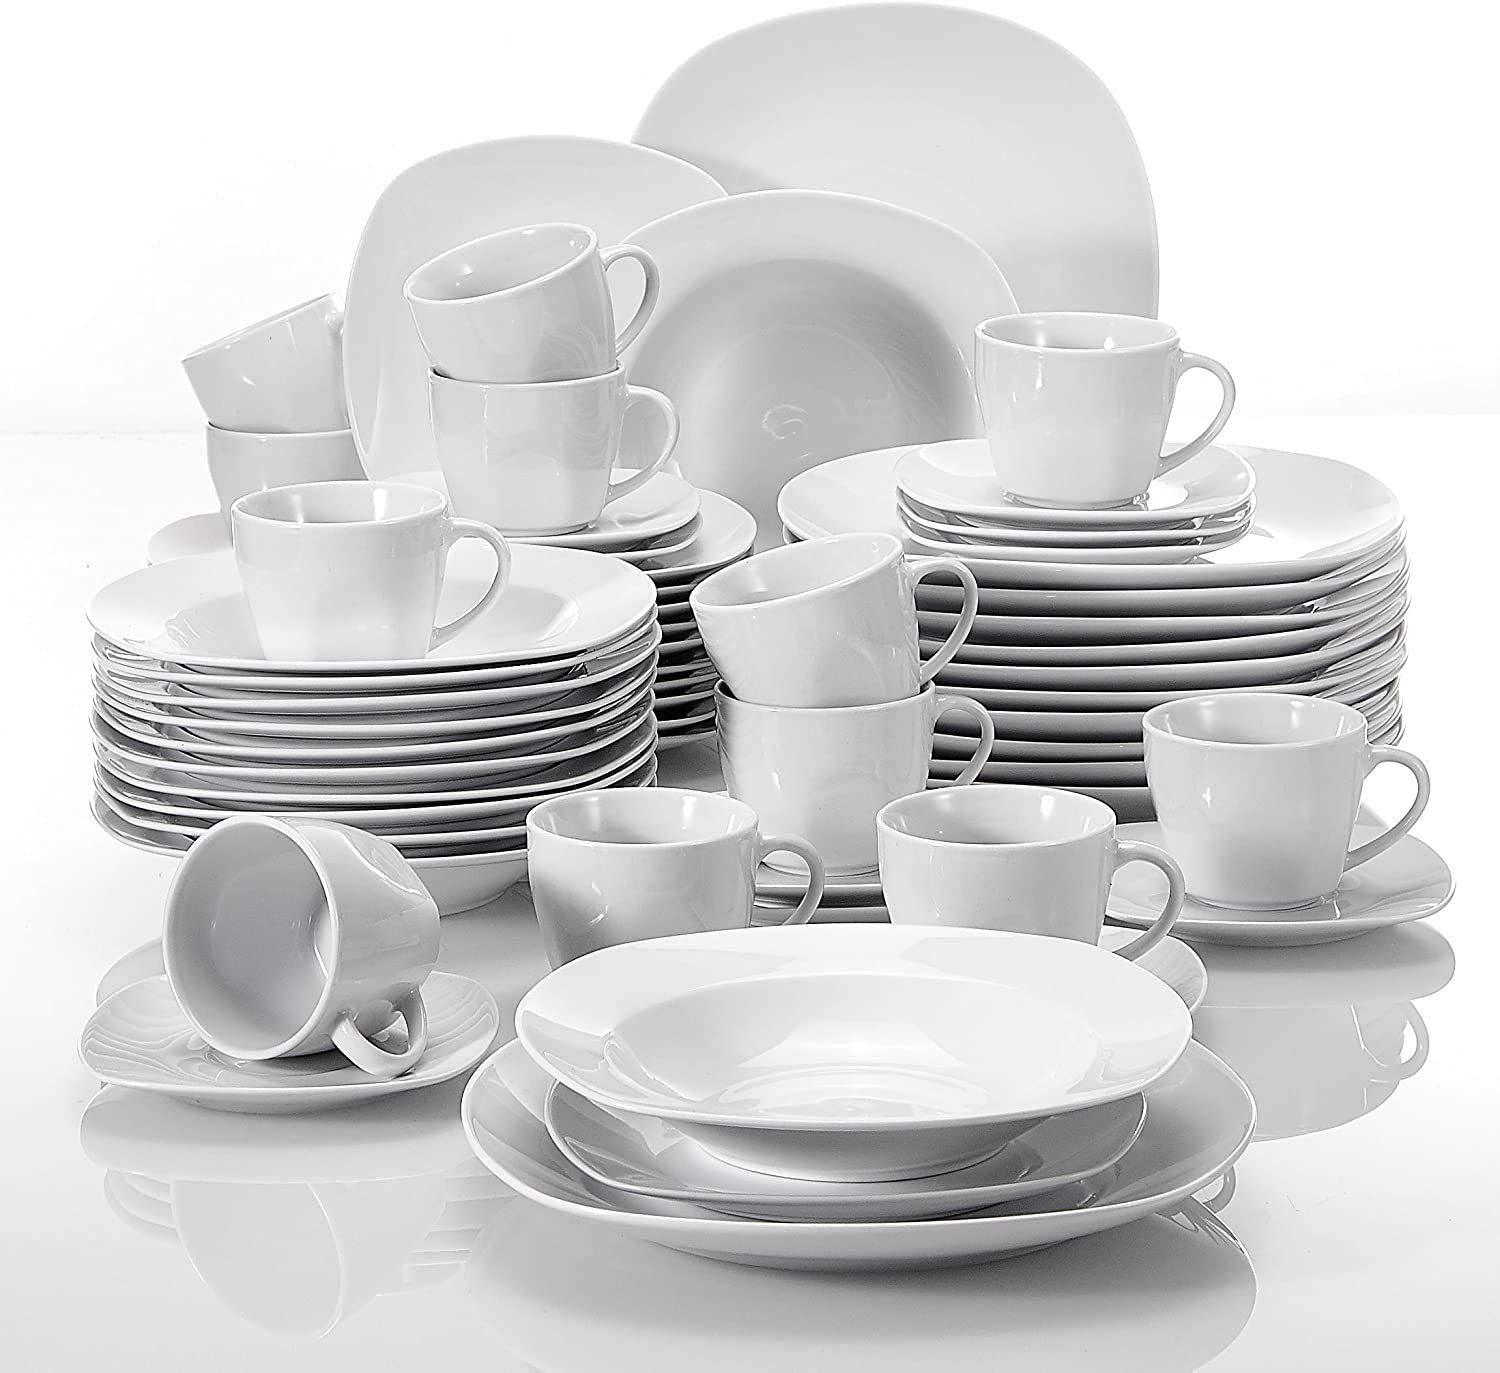 MALACASA Square White Dinner Sets, 60-Piece Porcelain Dinnerware Set with 12-Piece Dinner Plates, Dessert Plates and Soup Plates, Cups and Saucers Sets, Service for 12, Series Elisa